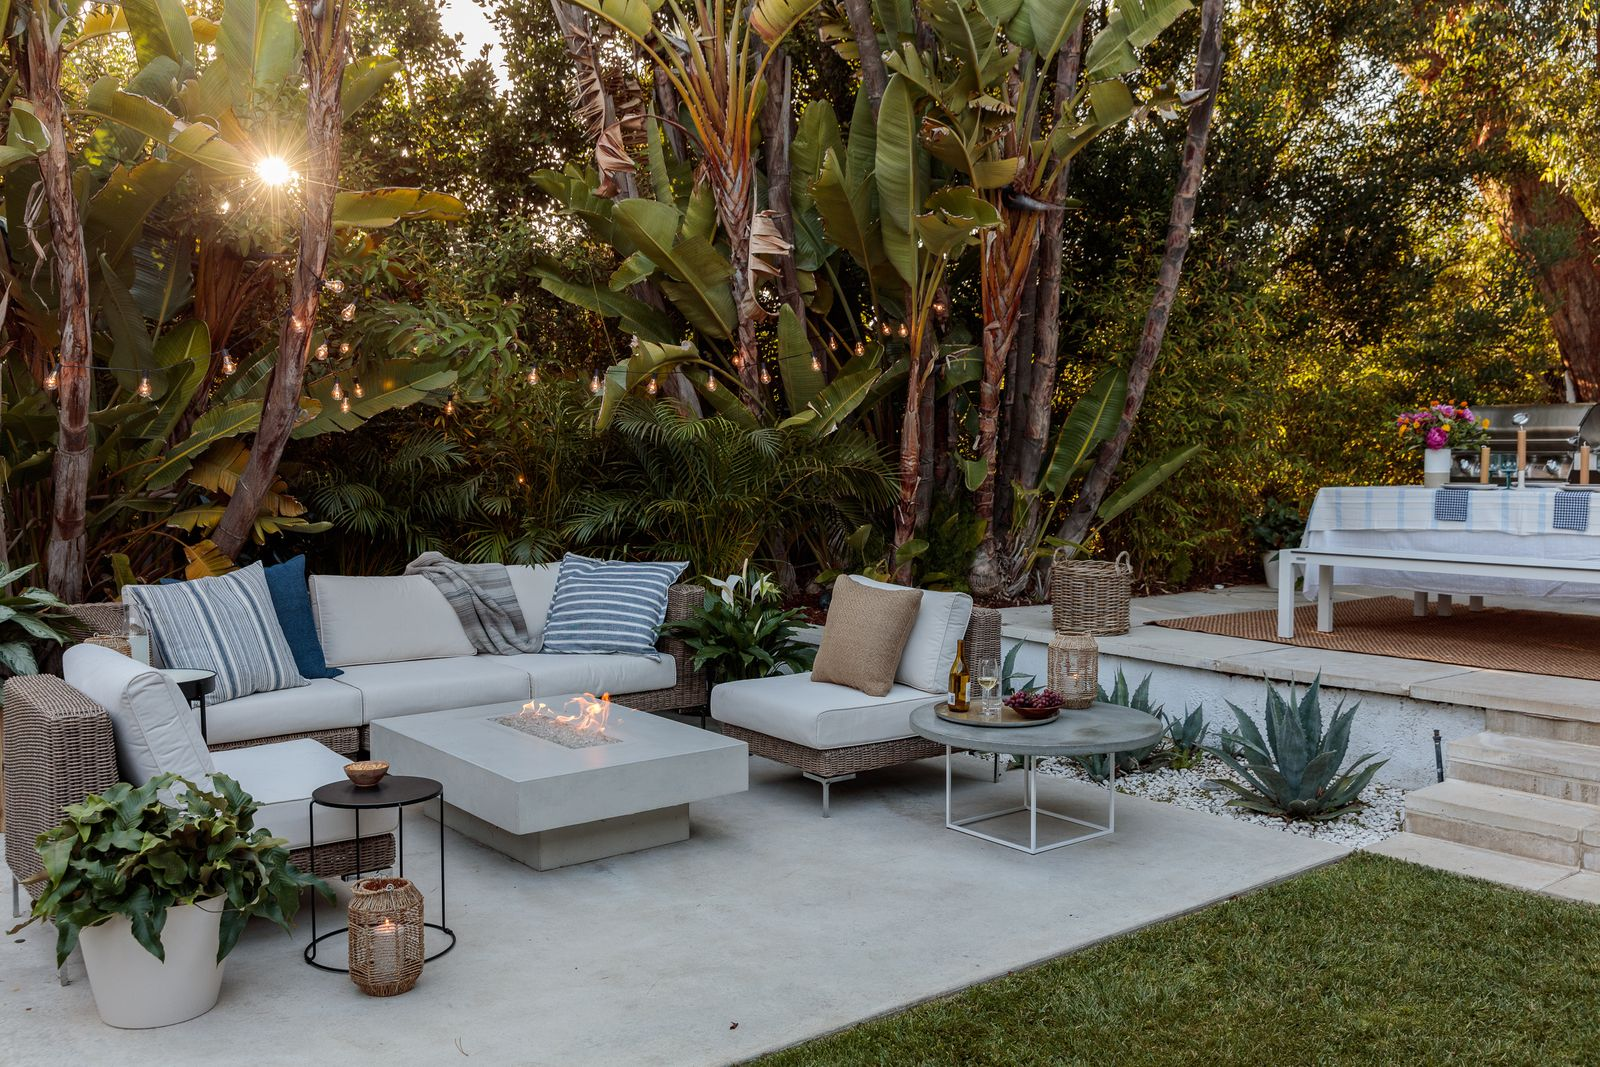 Neutral garden furniture with a glass fire pit